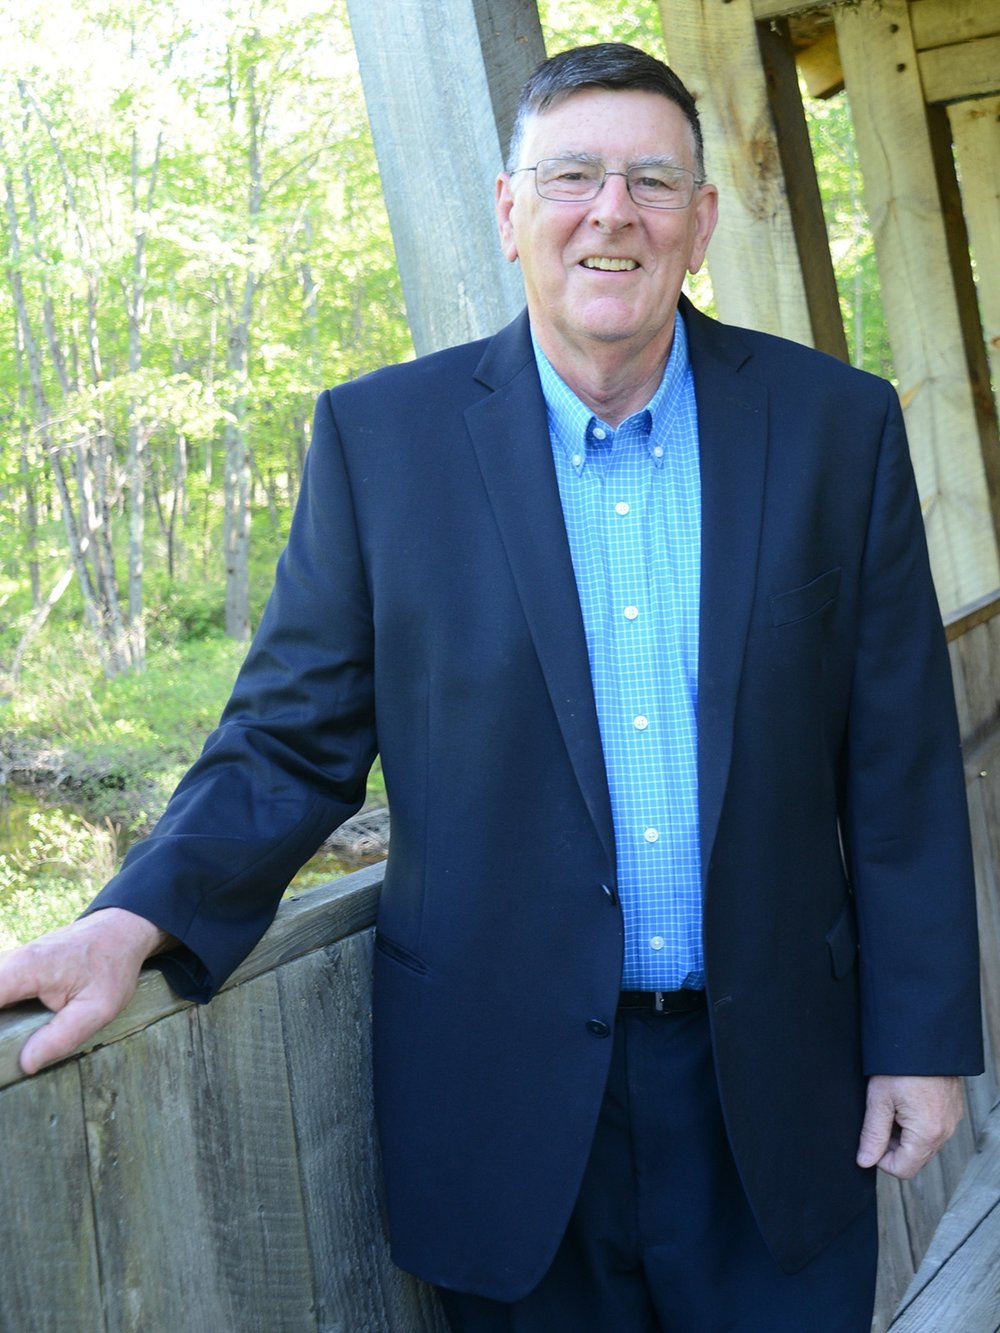 Pete Oberg - Insurance Agent & Designated Real Estate Broker - Pete is the third generation of Obergs to preside over the Oberg Insurance and Real Estate Agency. He has been a Real Estate and Insurance Agent for over 40 years and is very involved with the Lakes Region Community. He is presently the President of the Bridgton High School Scholarship Foundation, serves on the town Revitalization Committee, Bridgton's Waste Water Management Committee and other various boardsPete graduated from the University of Maine and heads up the insurance division of the agency and is also the Designated Broker on the Real Estate side.Email: Pete@ObergAgency.comCell: 207-632-6568Office: 207-647-5551